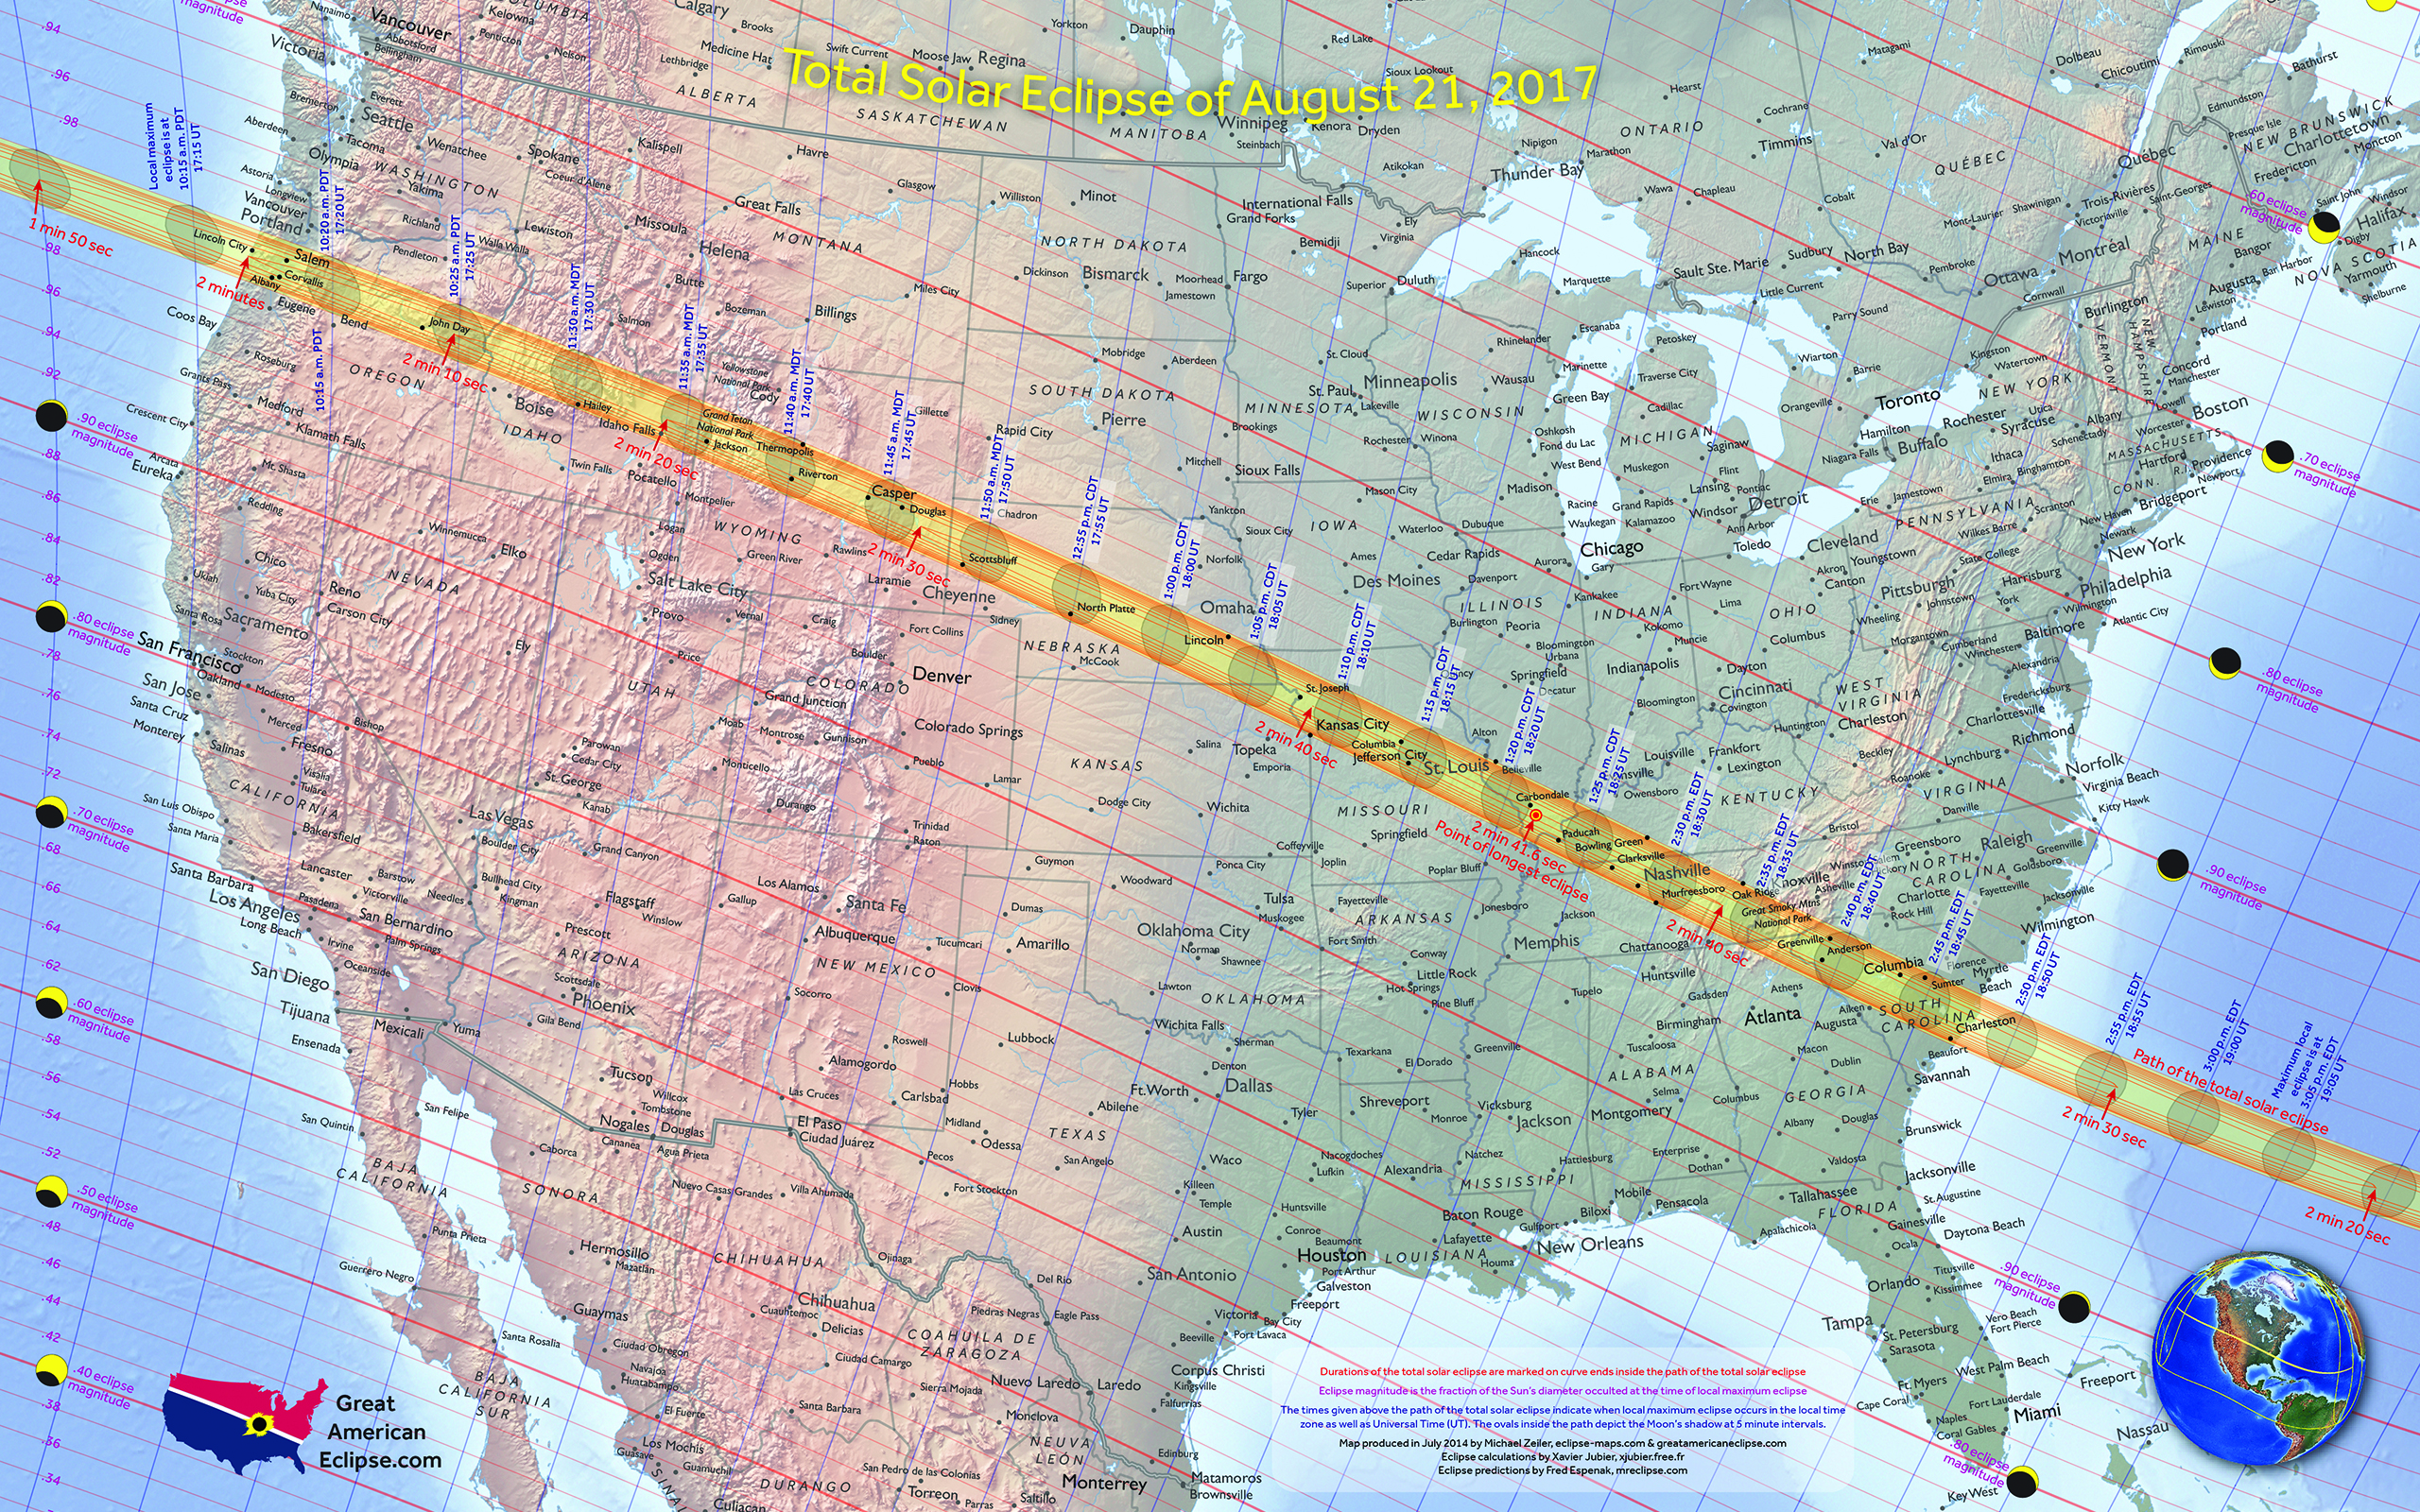 Eclipse 2017 Map Eclipse 2017 | OMSI